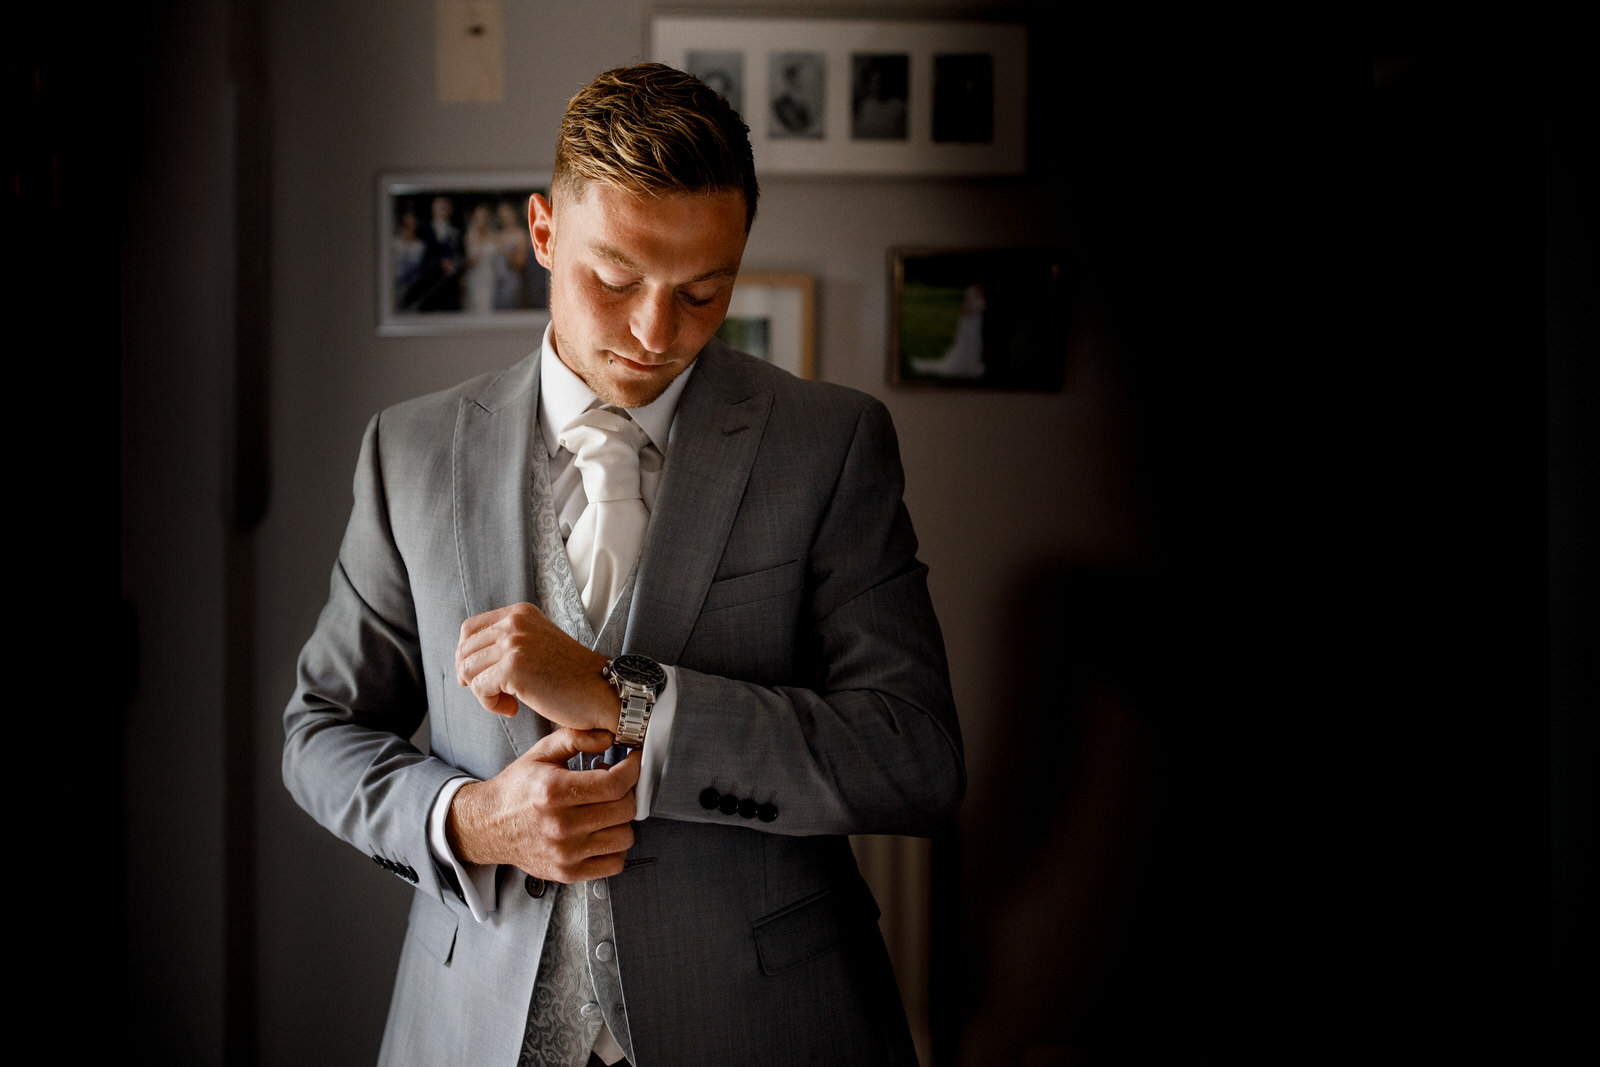 groom getting ready in window light